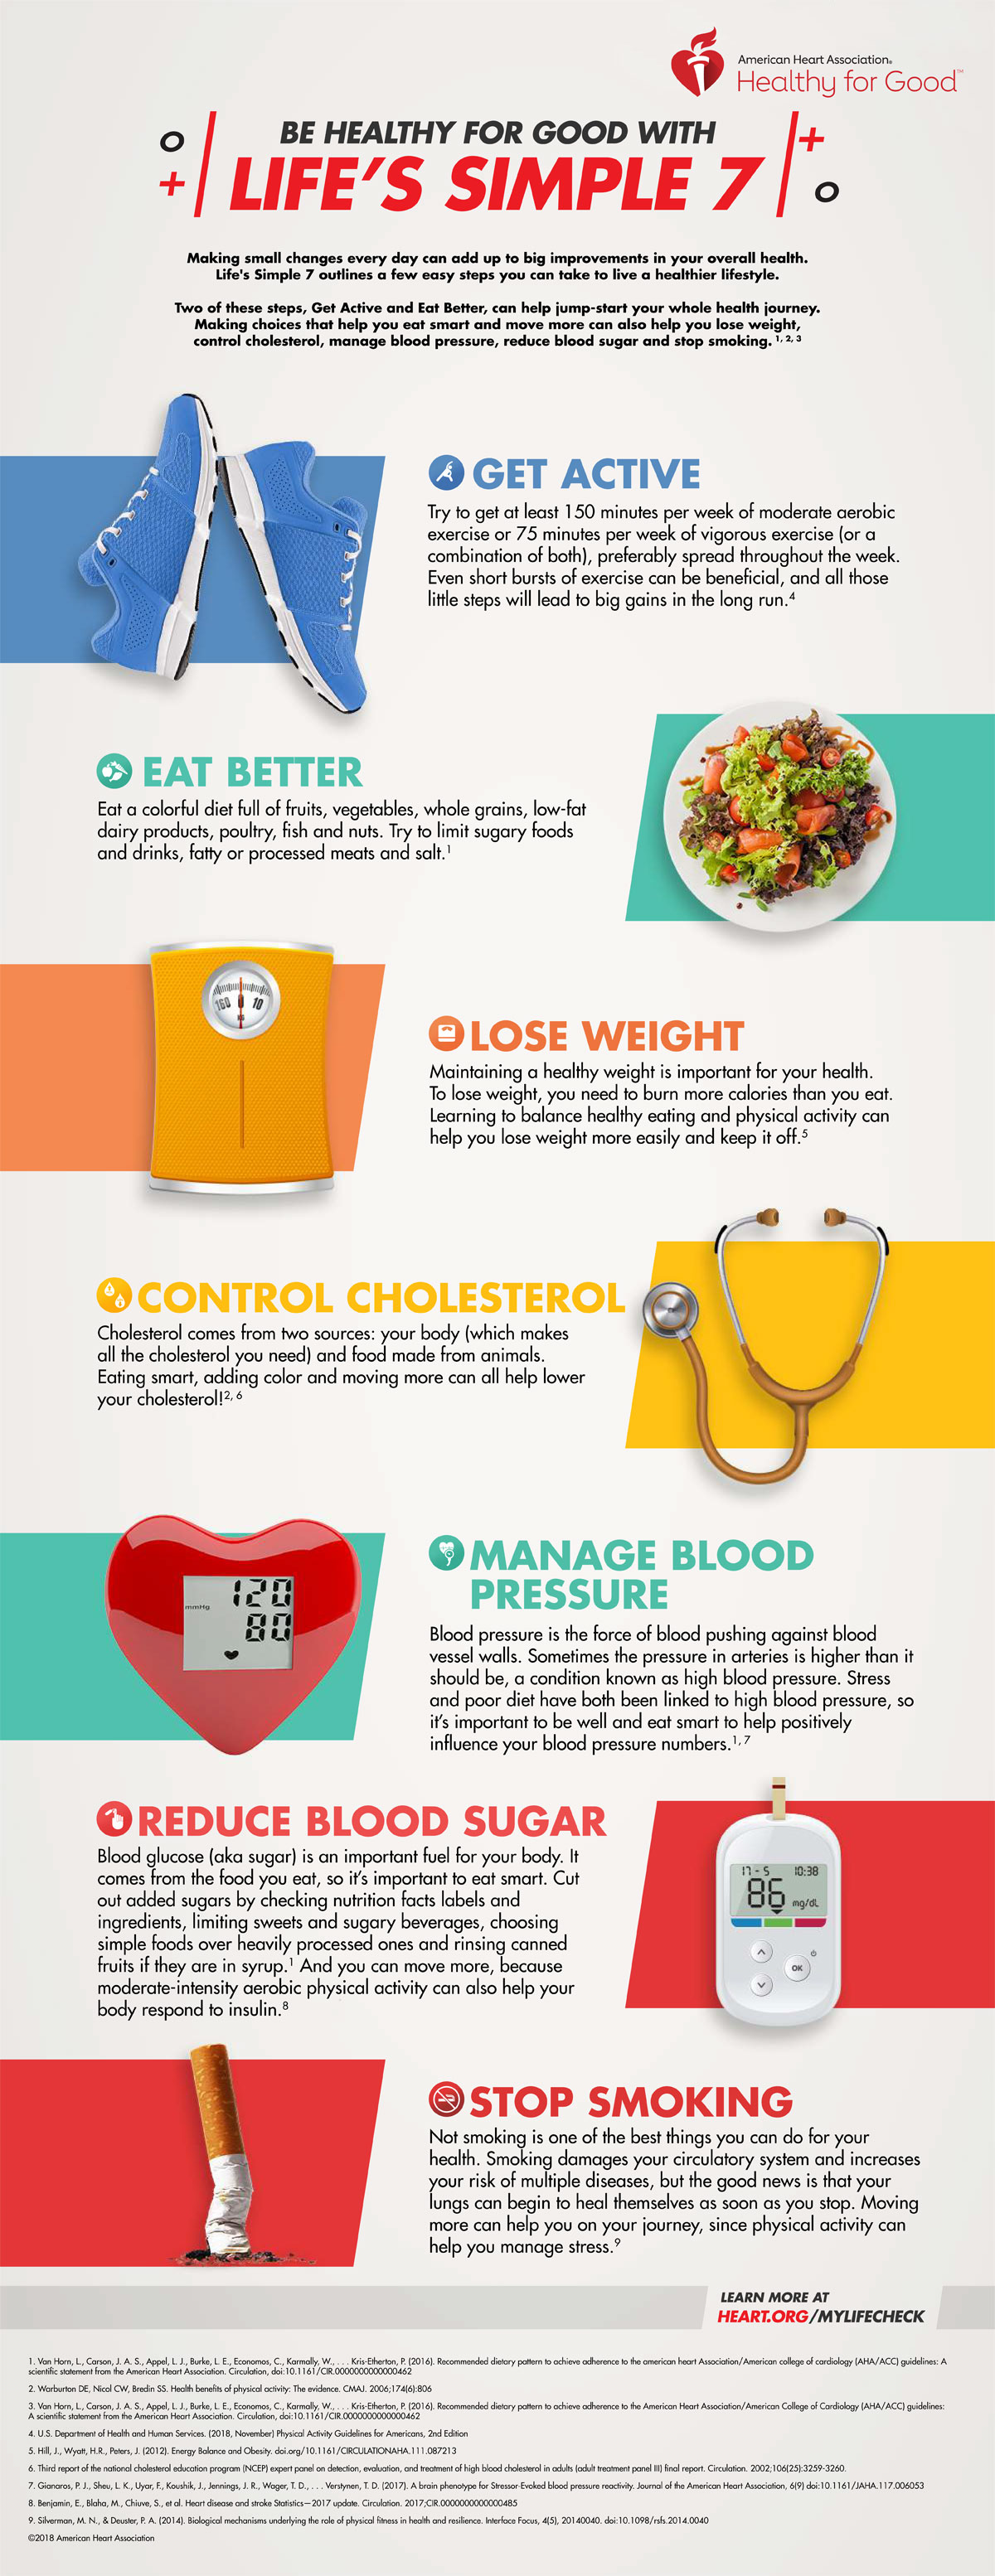 American Heart Association's Life's Simple 7 guidelines